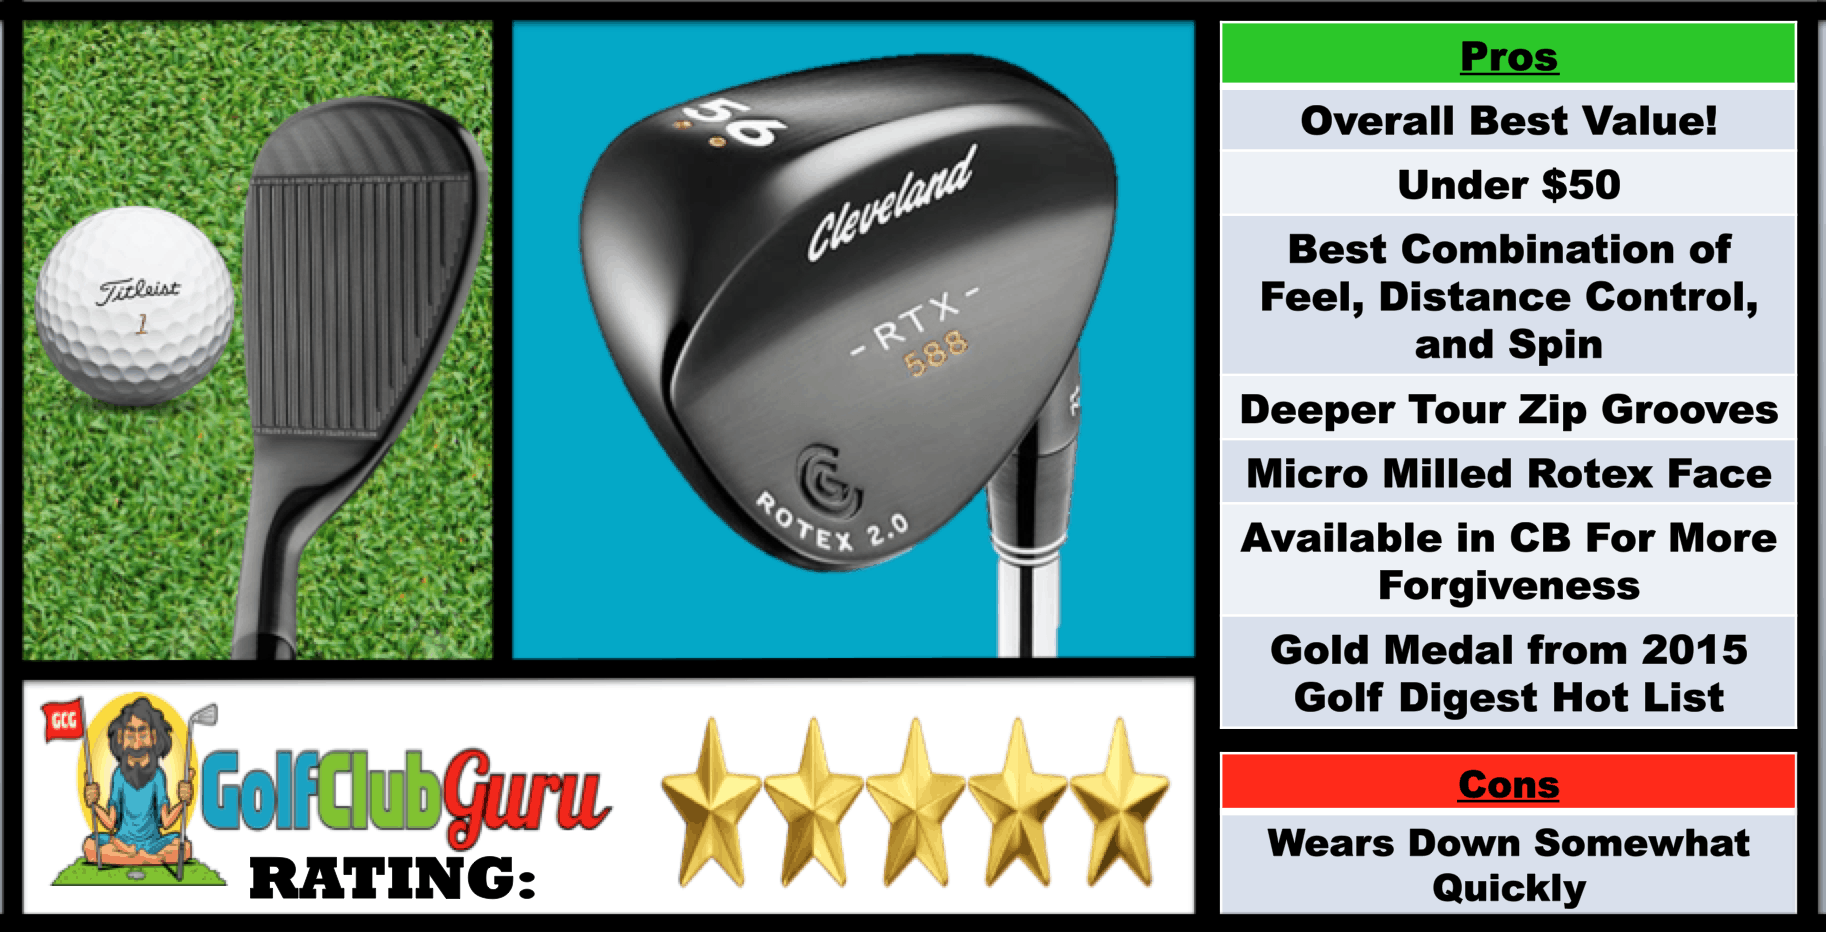 These are the pros and cons of the Cleveland 588 RTX 2.0 Golf Wedge, which was voted the #1 top wedge on a budget by Golf Club Guru.